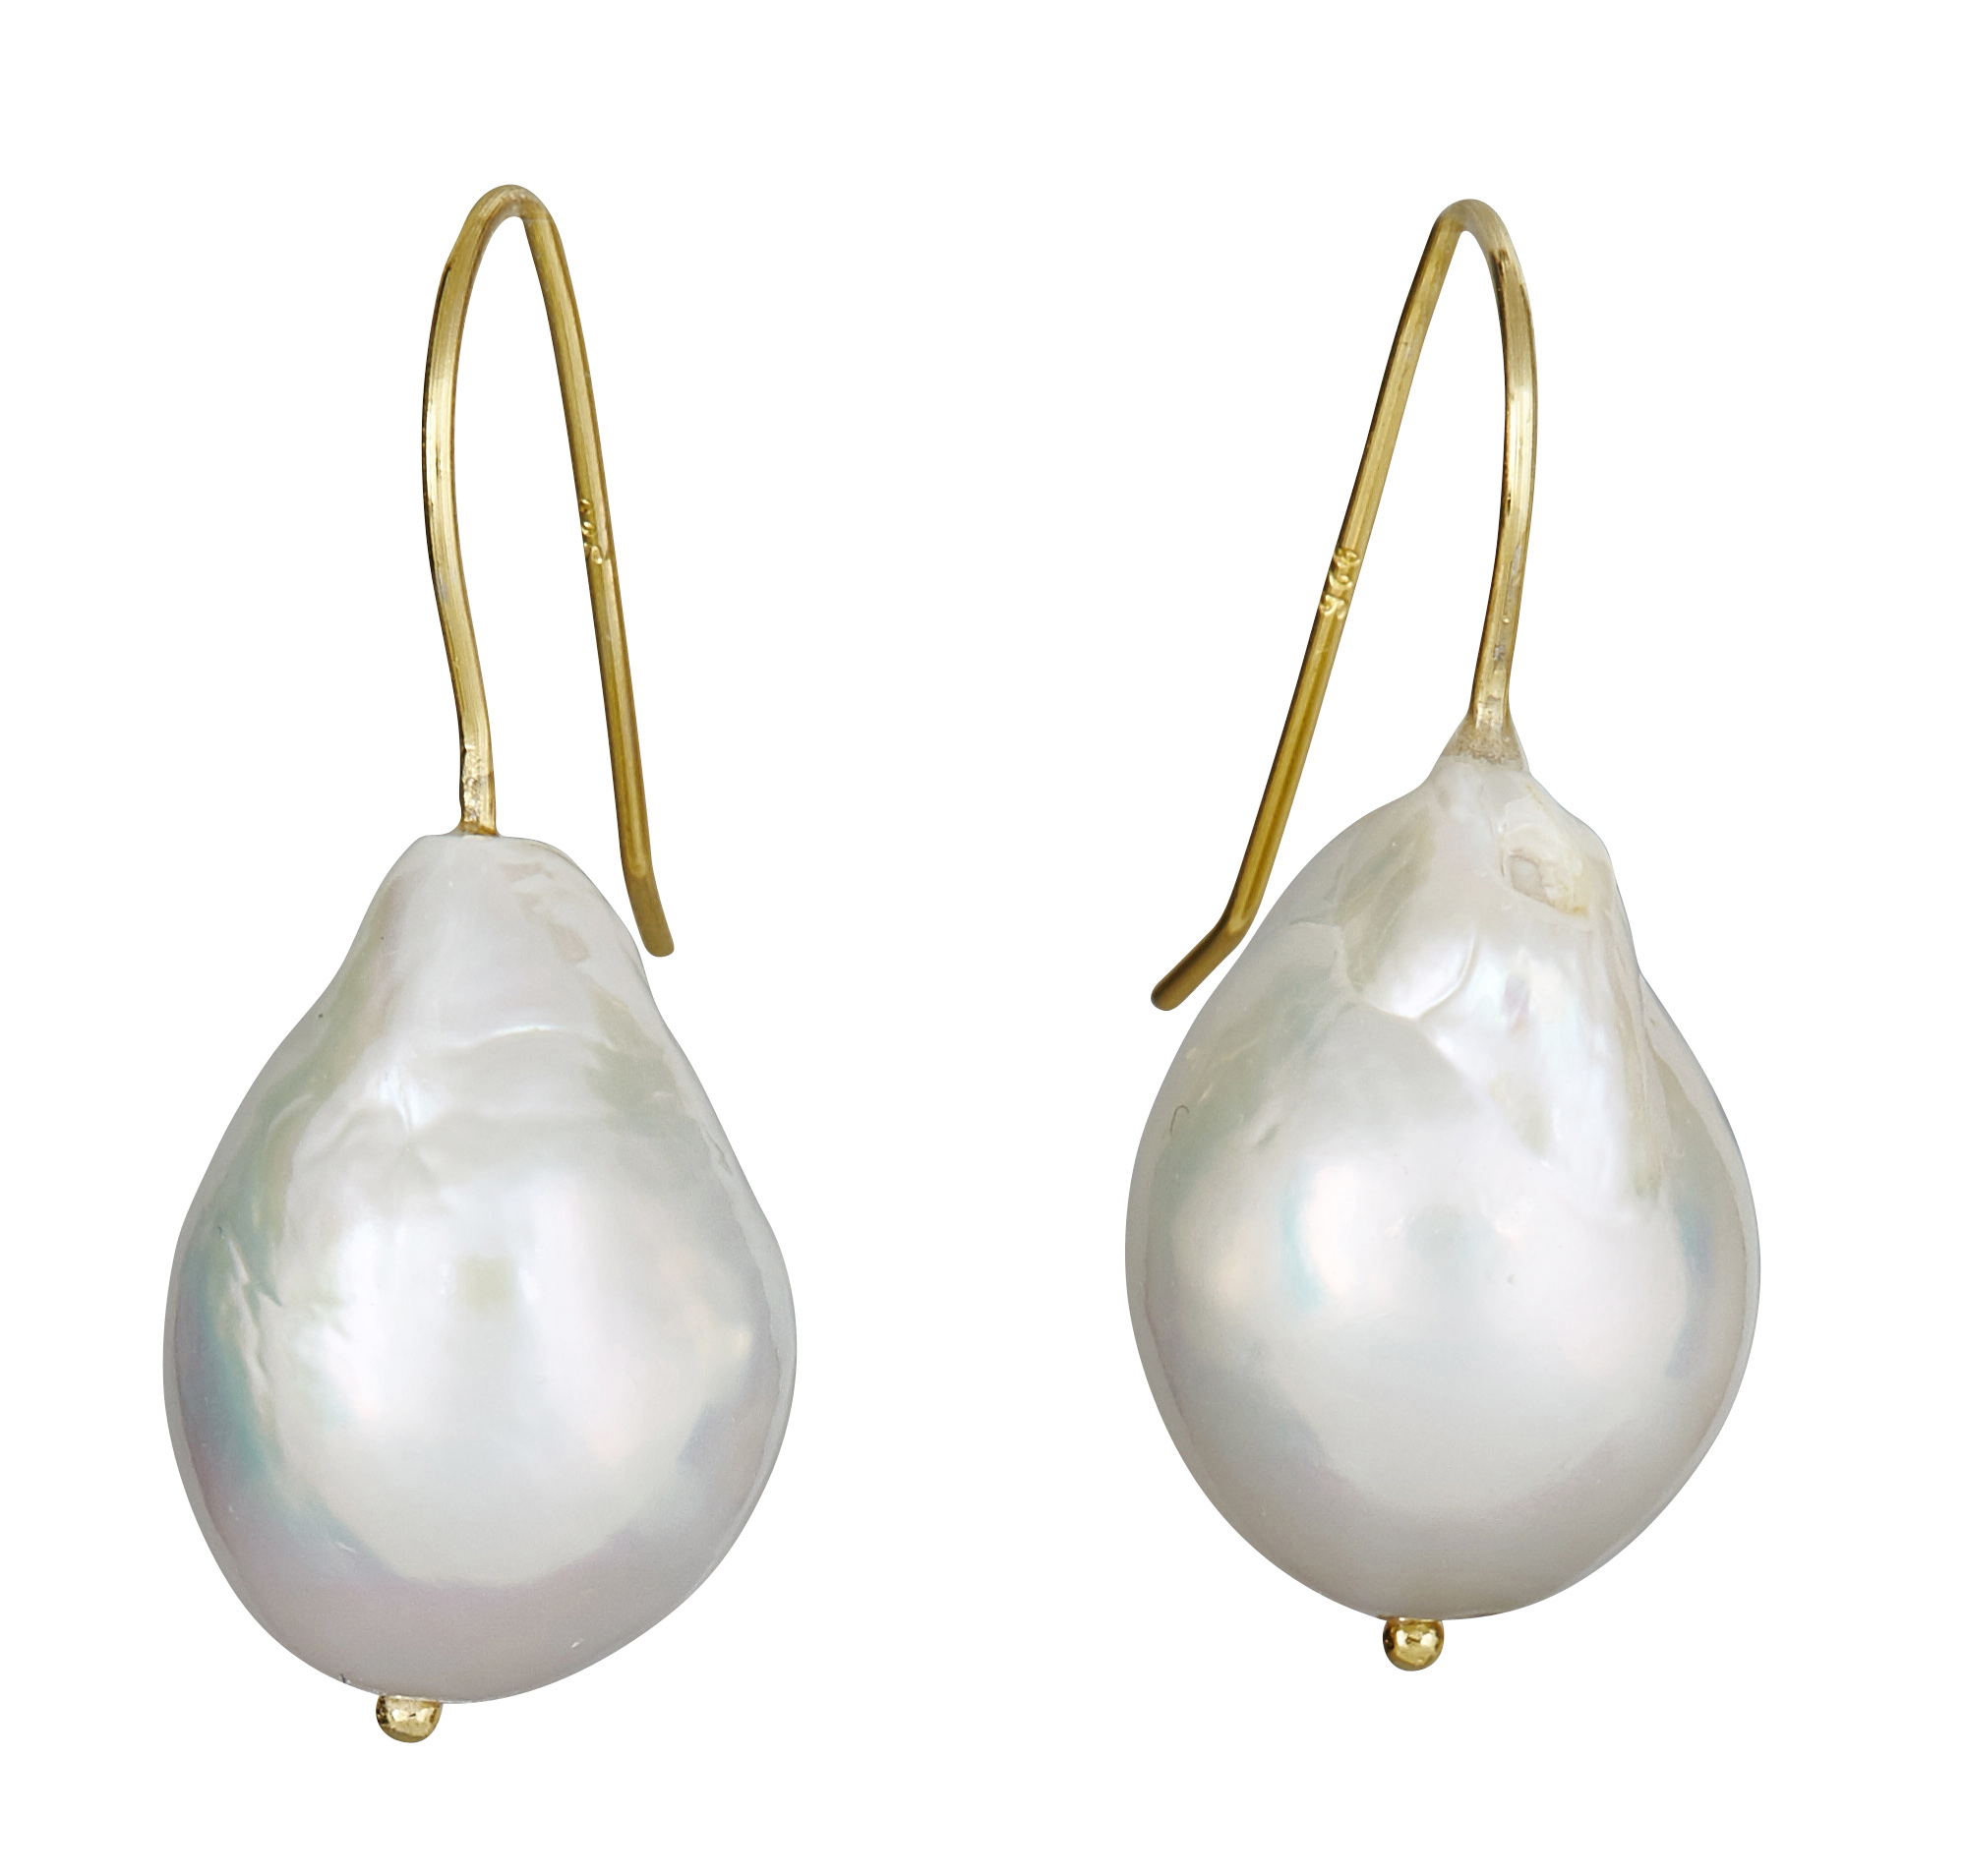 water earrings lyst jewelry yvel baroque in ylwgold pearl product stud white metallic gallery fresh